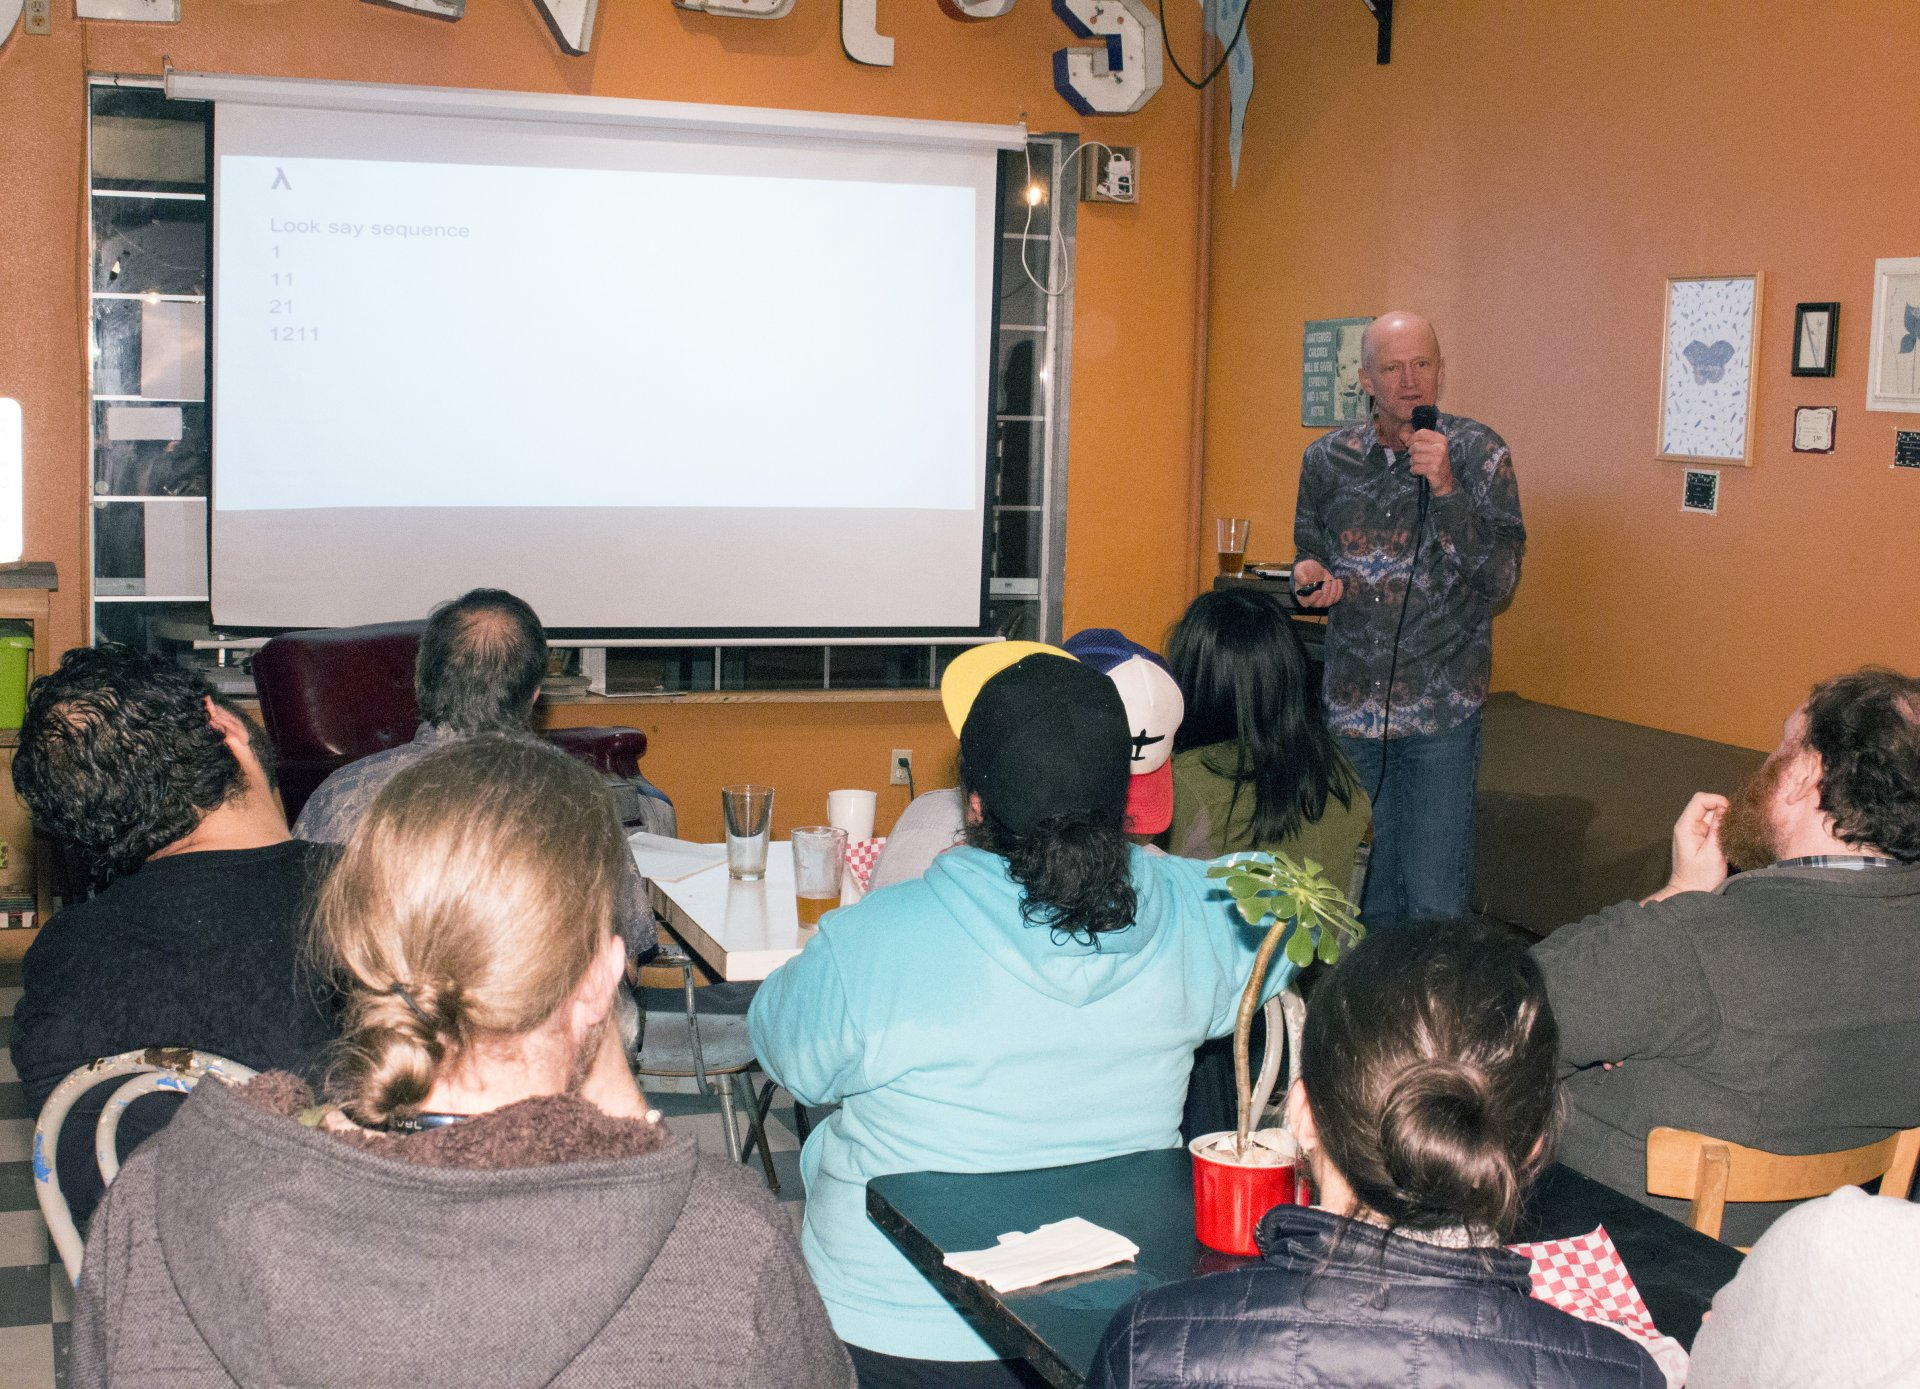 Mathematician Jeff Haag presents at Science on Tap at Blondies on March 7. Photo by Nick Kemper.